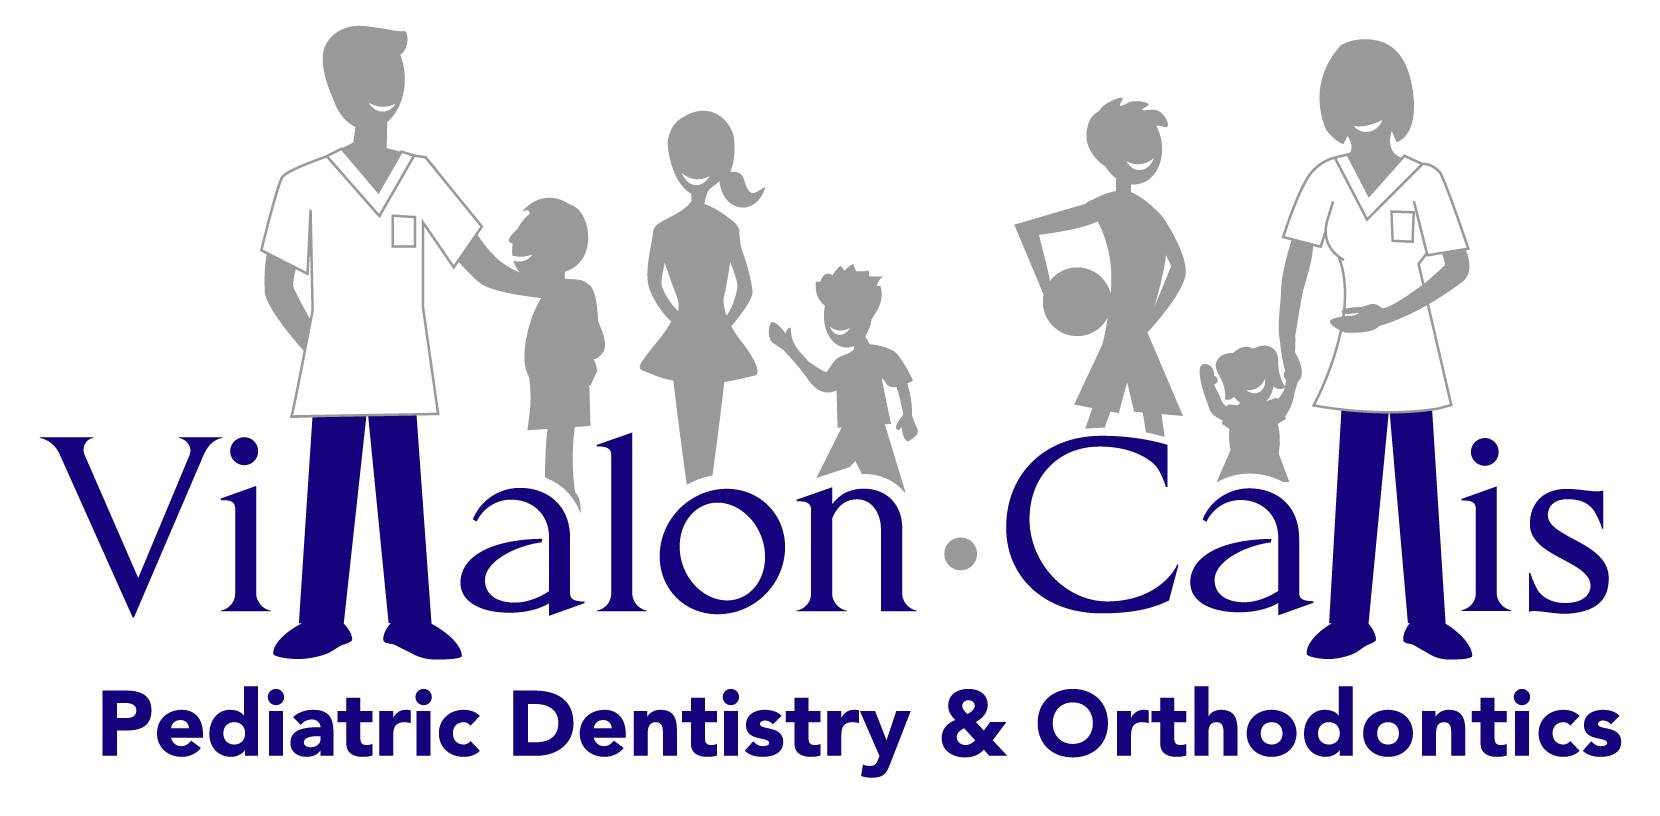 Villalon Callis Pediatric Dentistry & Orthodontics